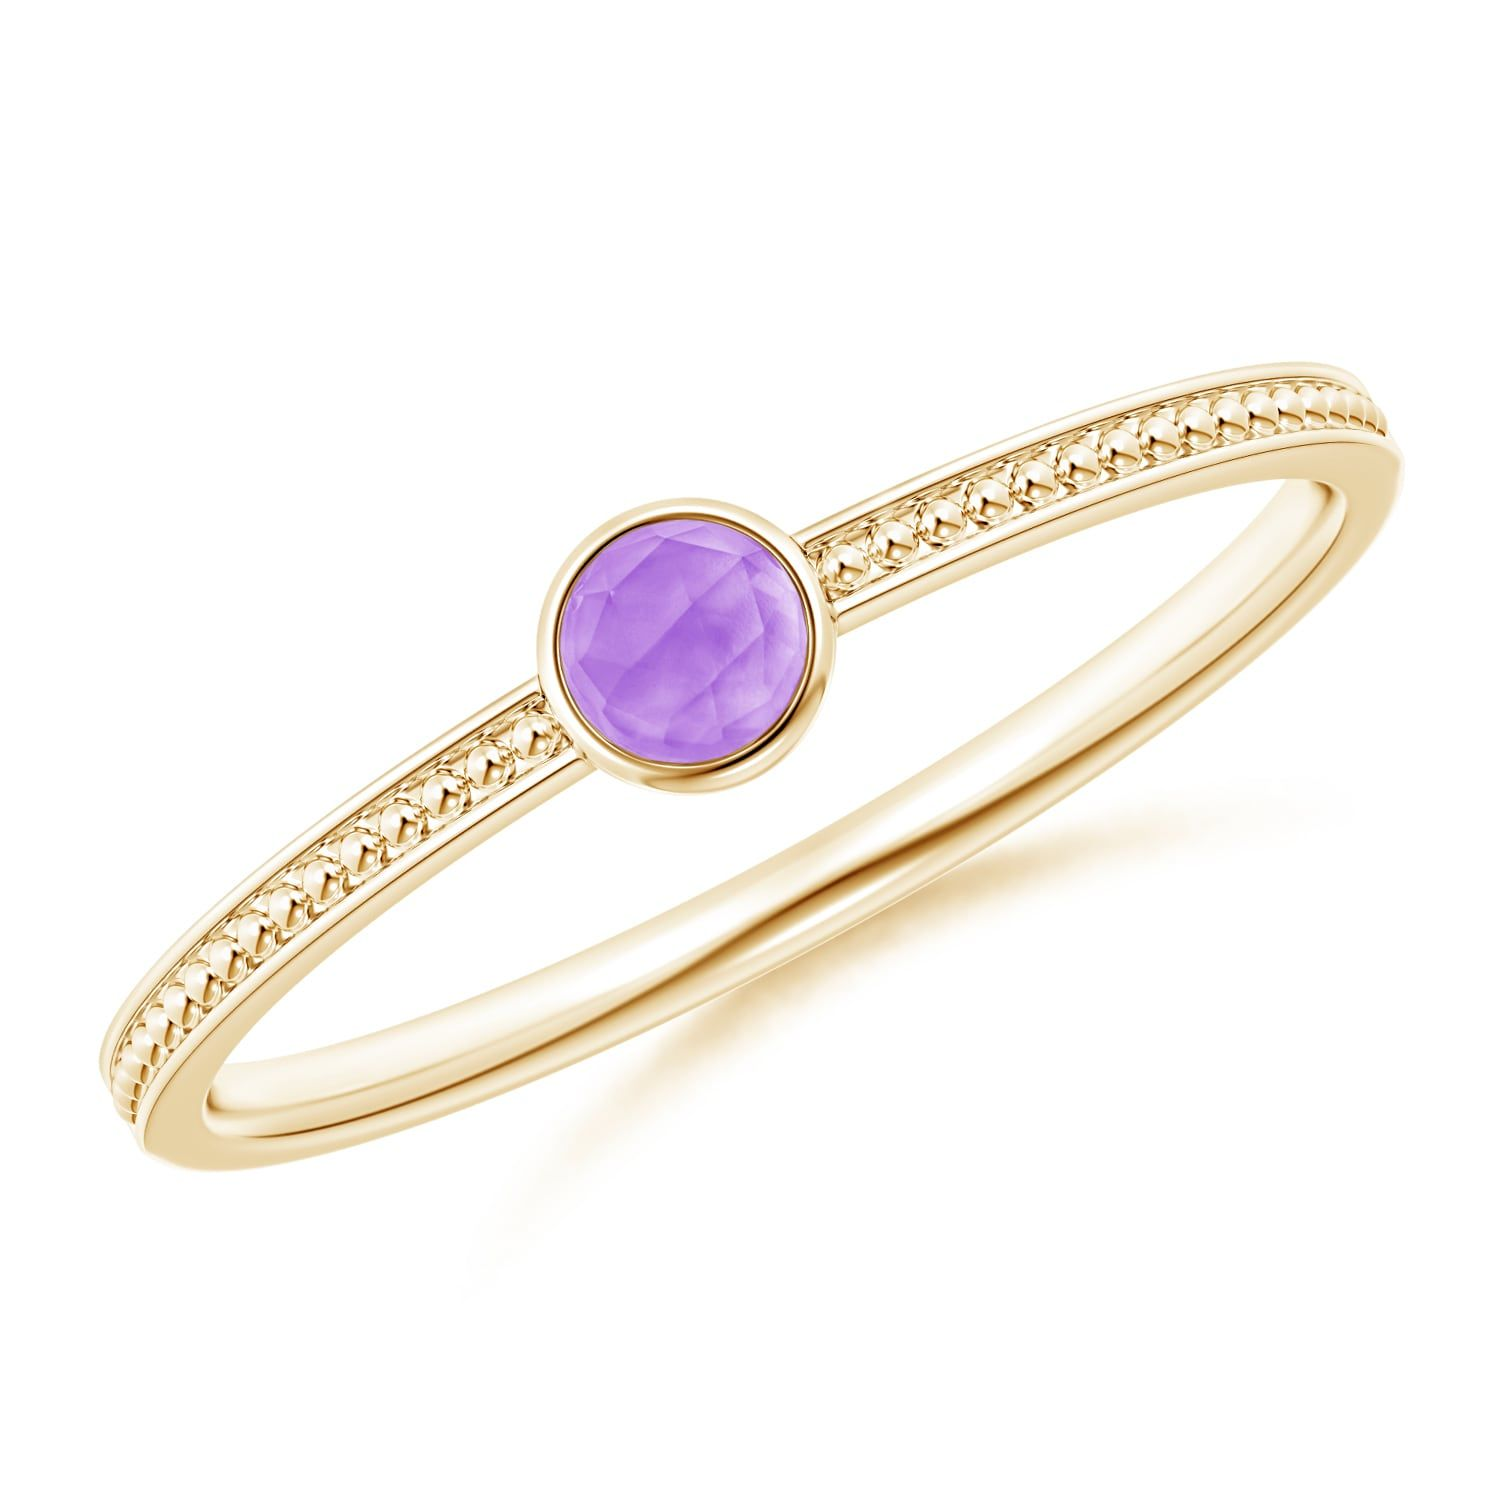 Angara Vintage Amethyst Ring in Rose Gold ZpmkVaRB60